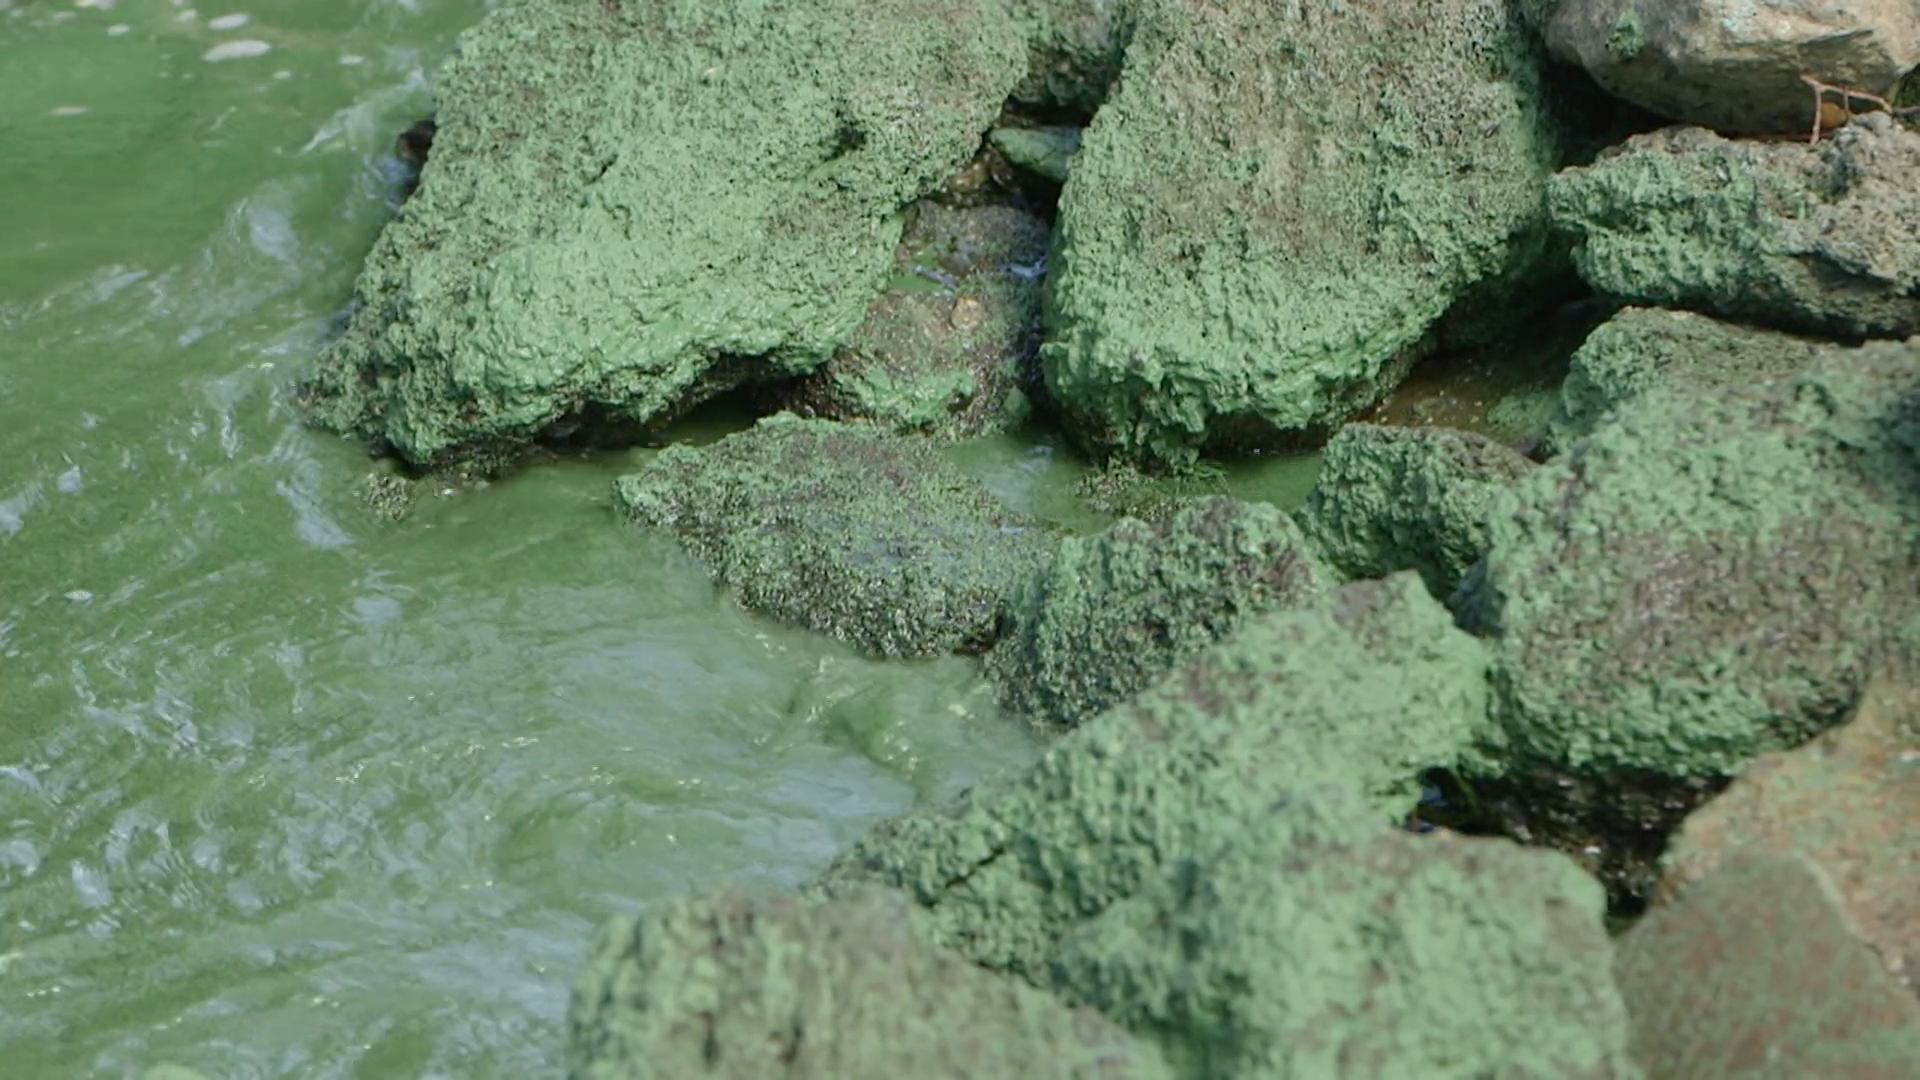 Algae on the surface of the water in the Indian River Lagoon. (Photo by Daniel Traub.)